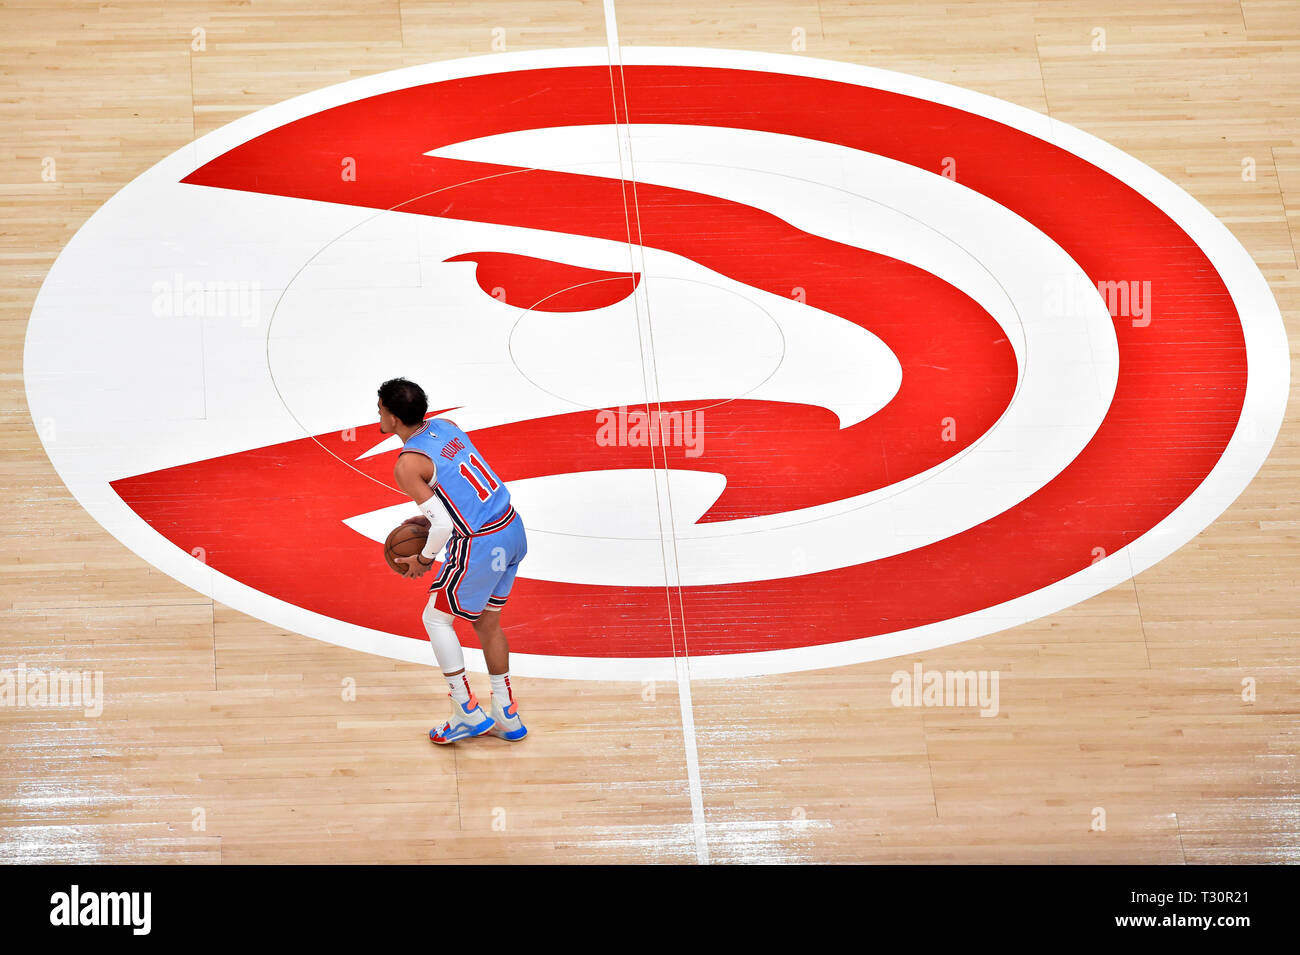 Trae Young Stock Photos Trae Young Stock Images Alamy